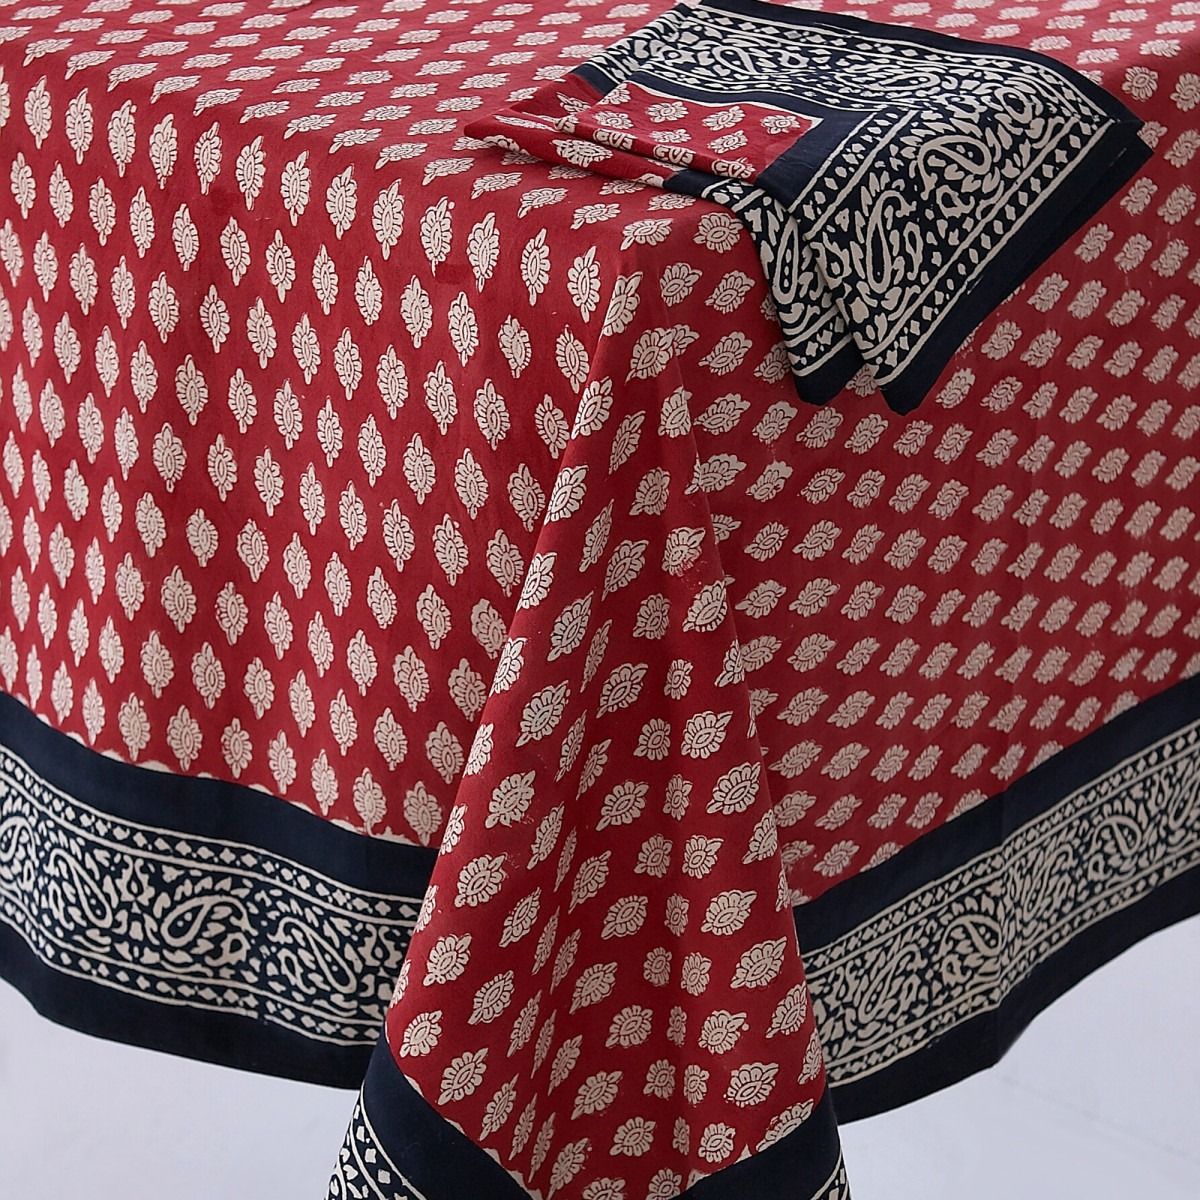 Tablecloth Red And Black 2000x2000 Jpg